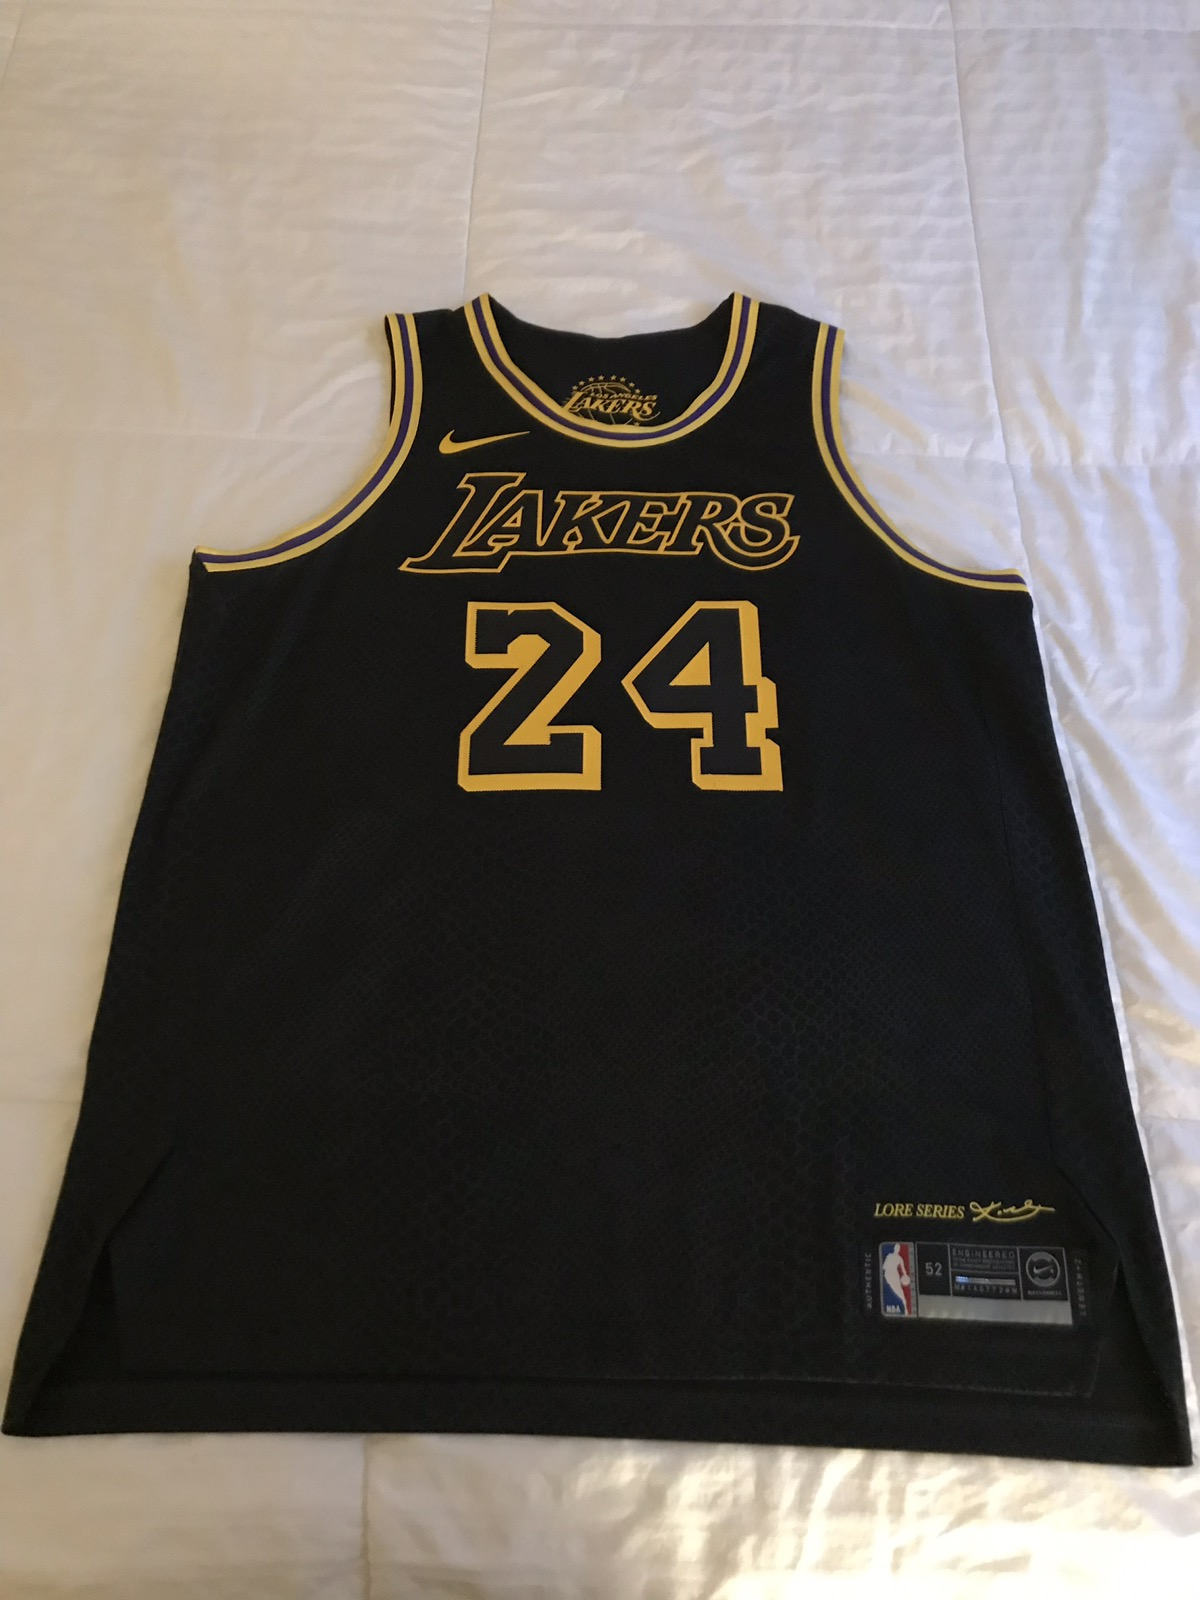 b69e8bee9 Nike Nike Kobe Bryant City Edition Authentic Los Angeles Lakers Jersey Size  52 XL Supreme Bape Off White Vlone Fear Of God Size xl - Jerseys for Sale -  ...